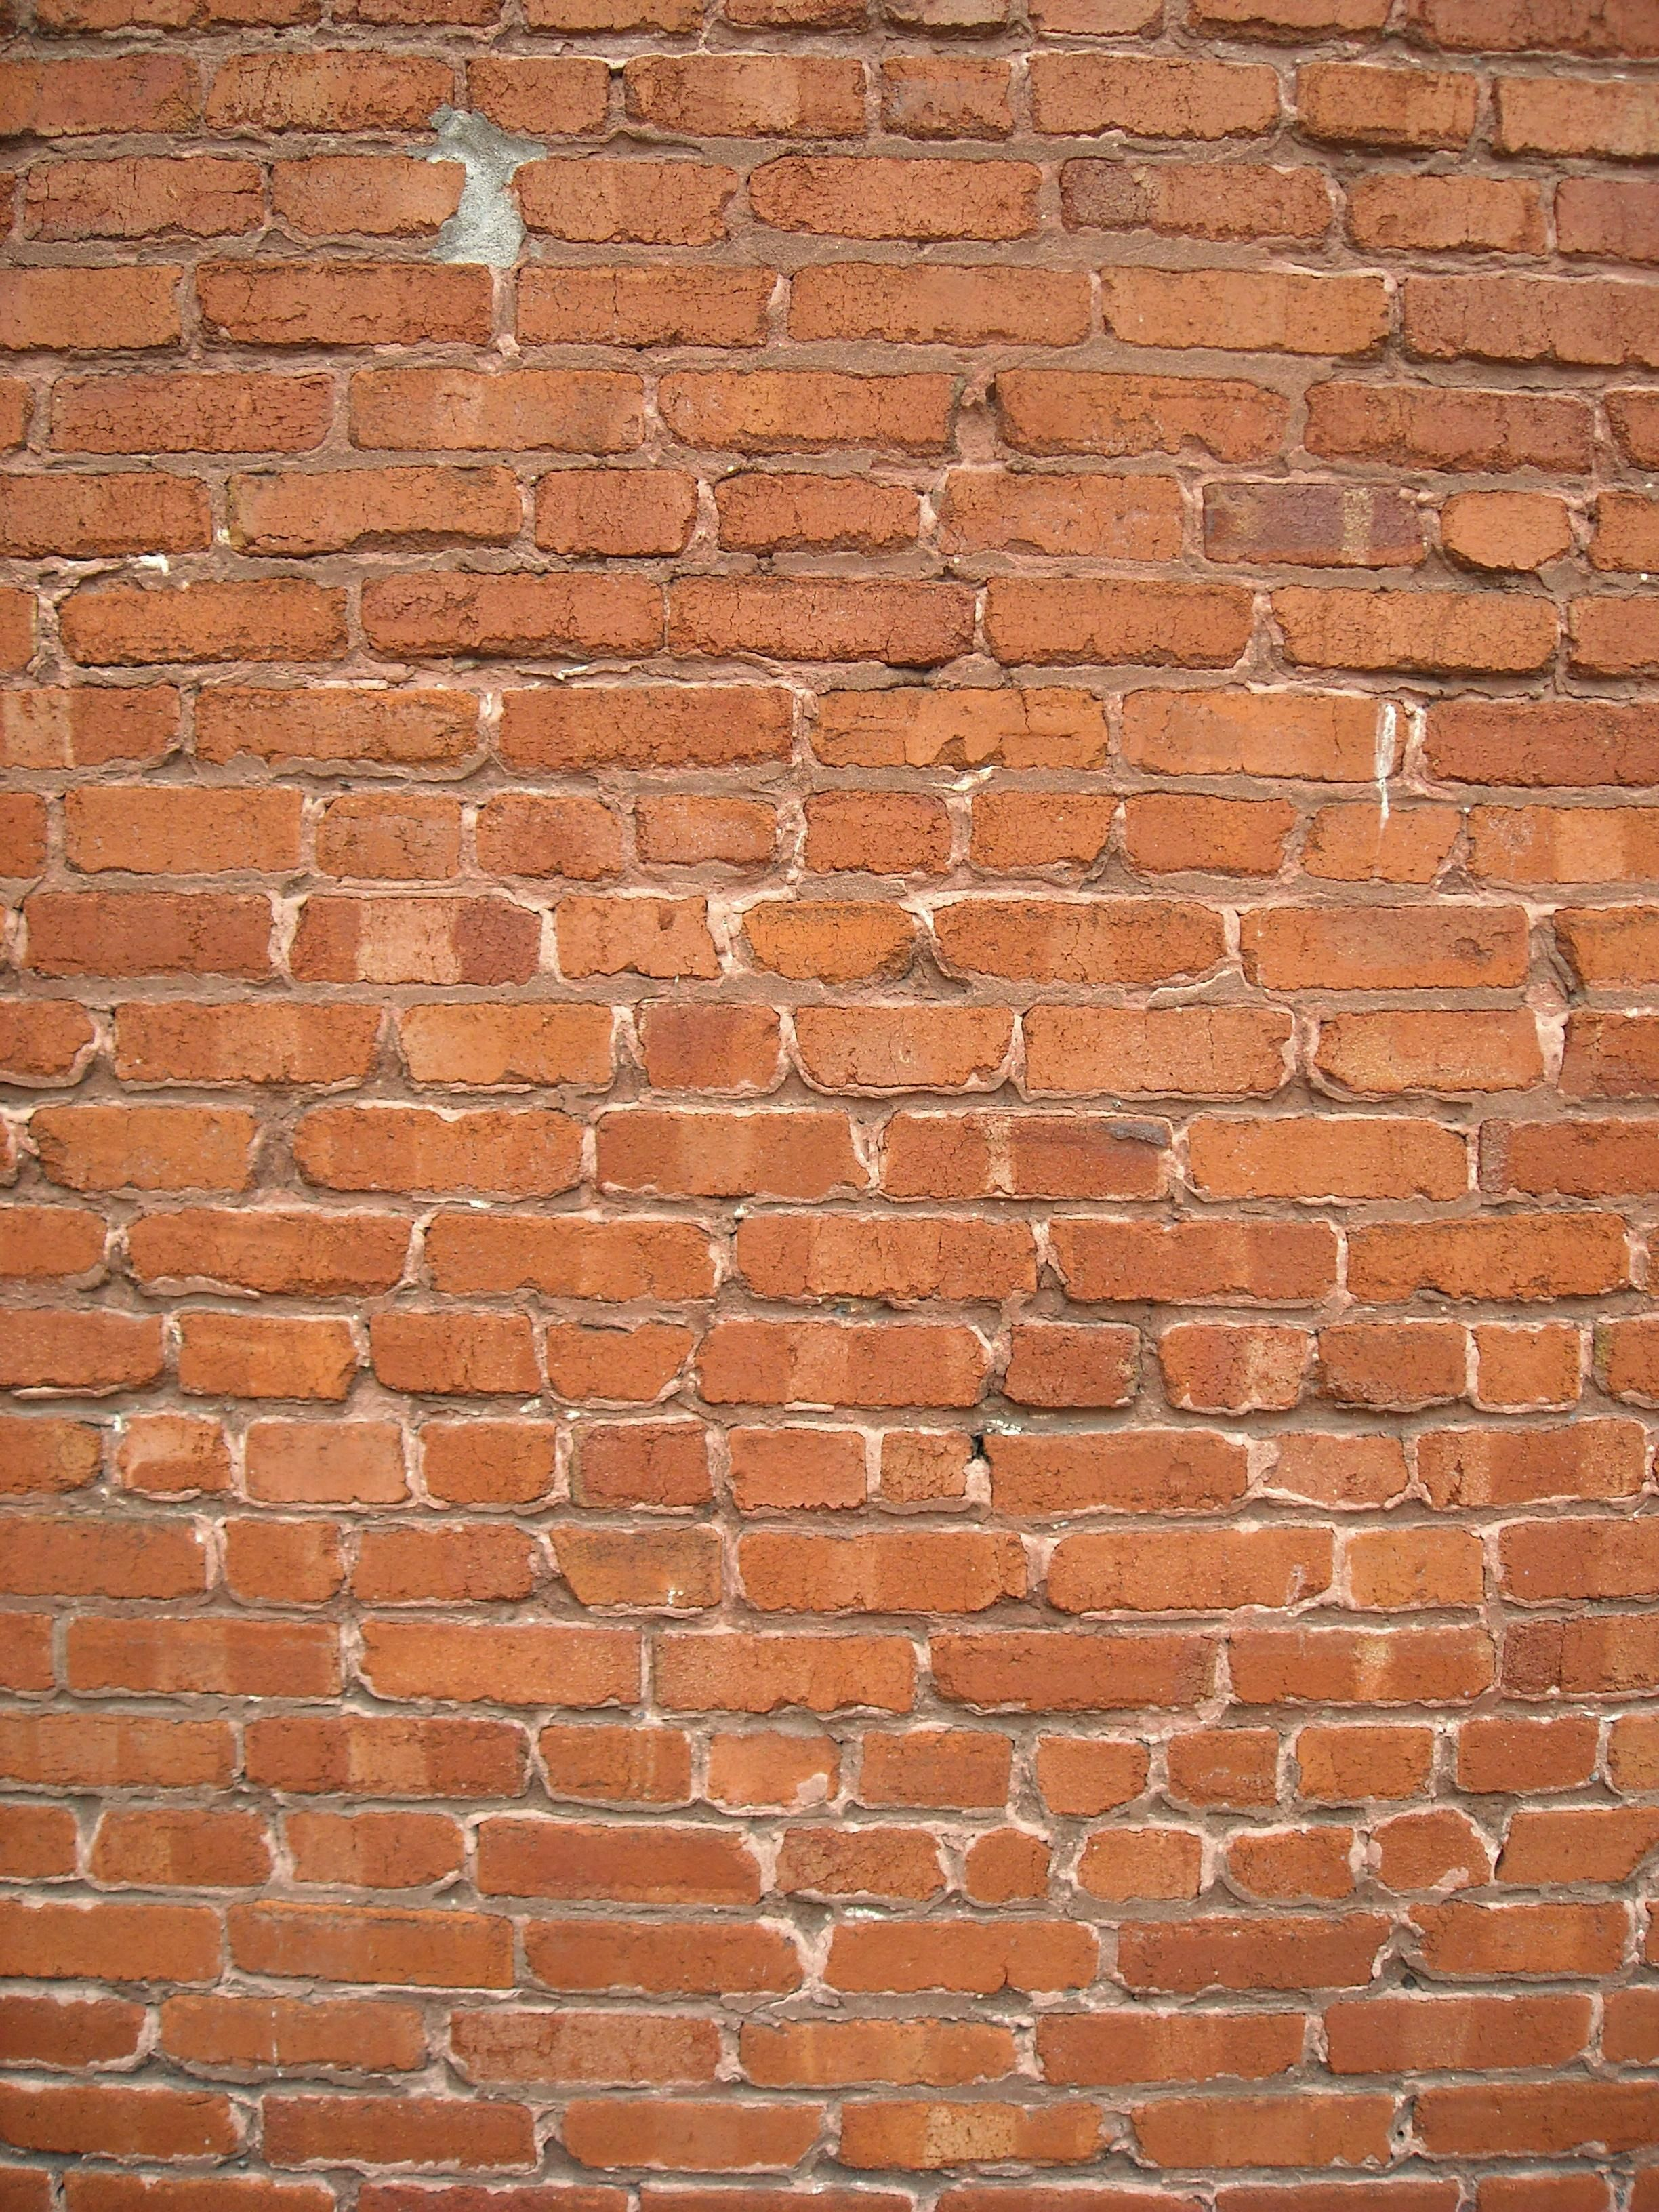 File:Brick wall brush texture.jpg - Wikimedia Commons